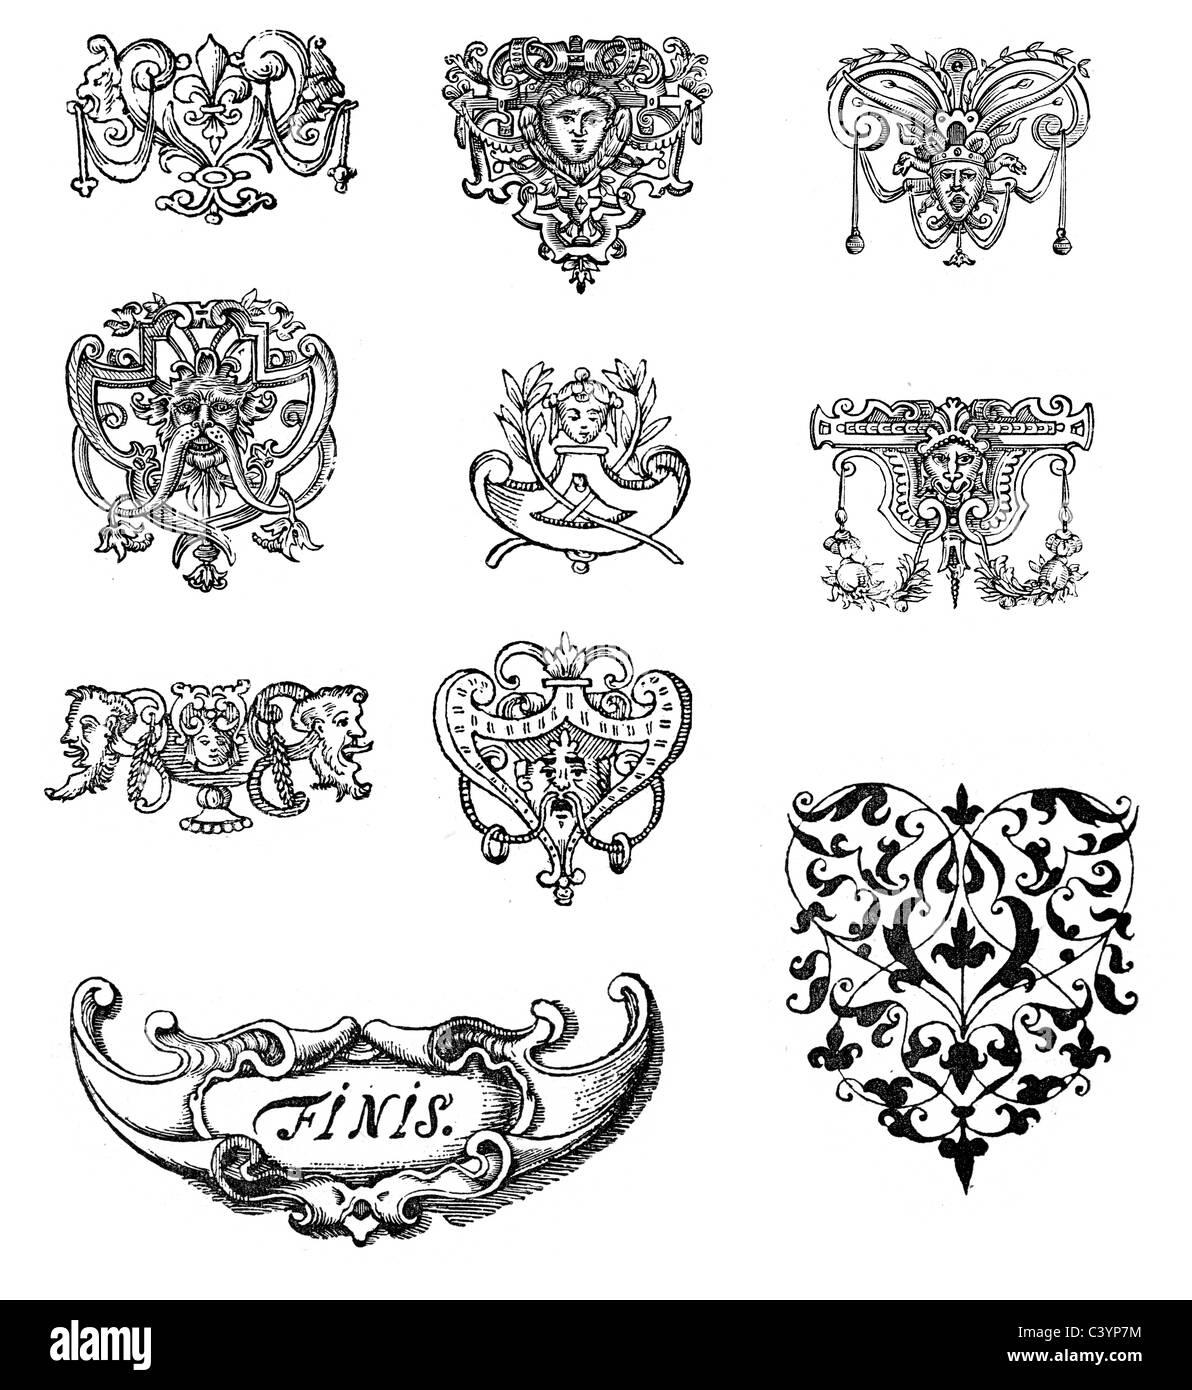 Victorian Design Elements retro style design elements with a victorian or medieval style